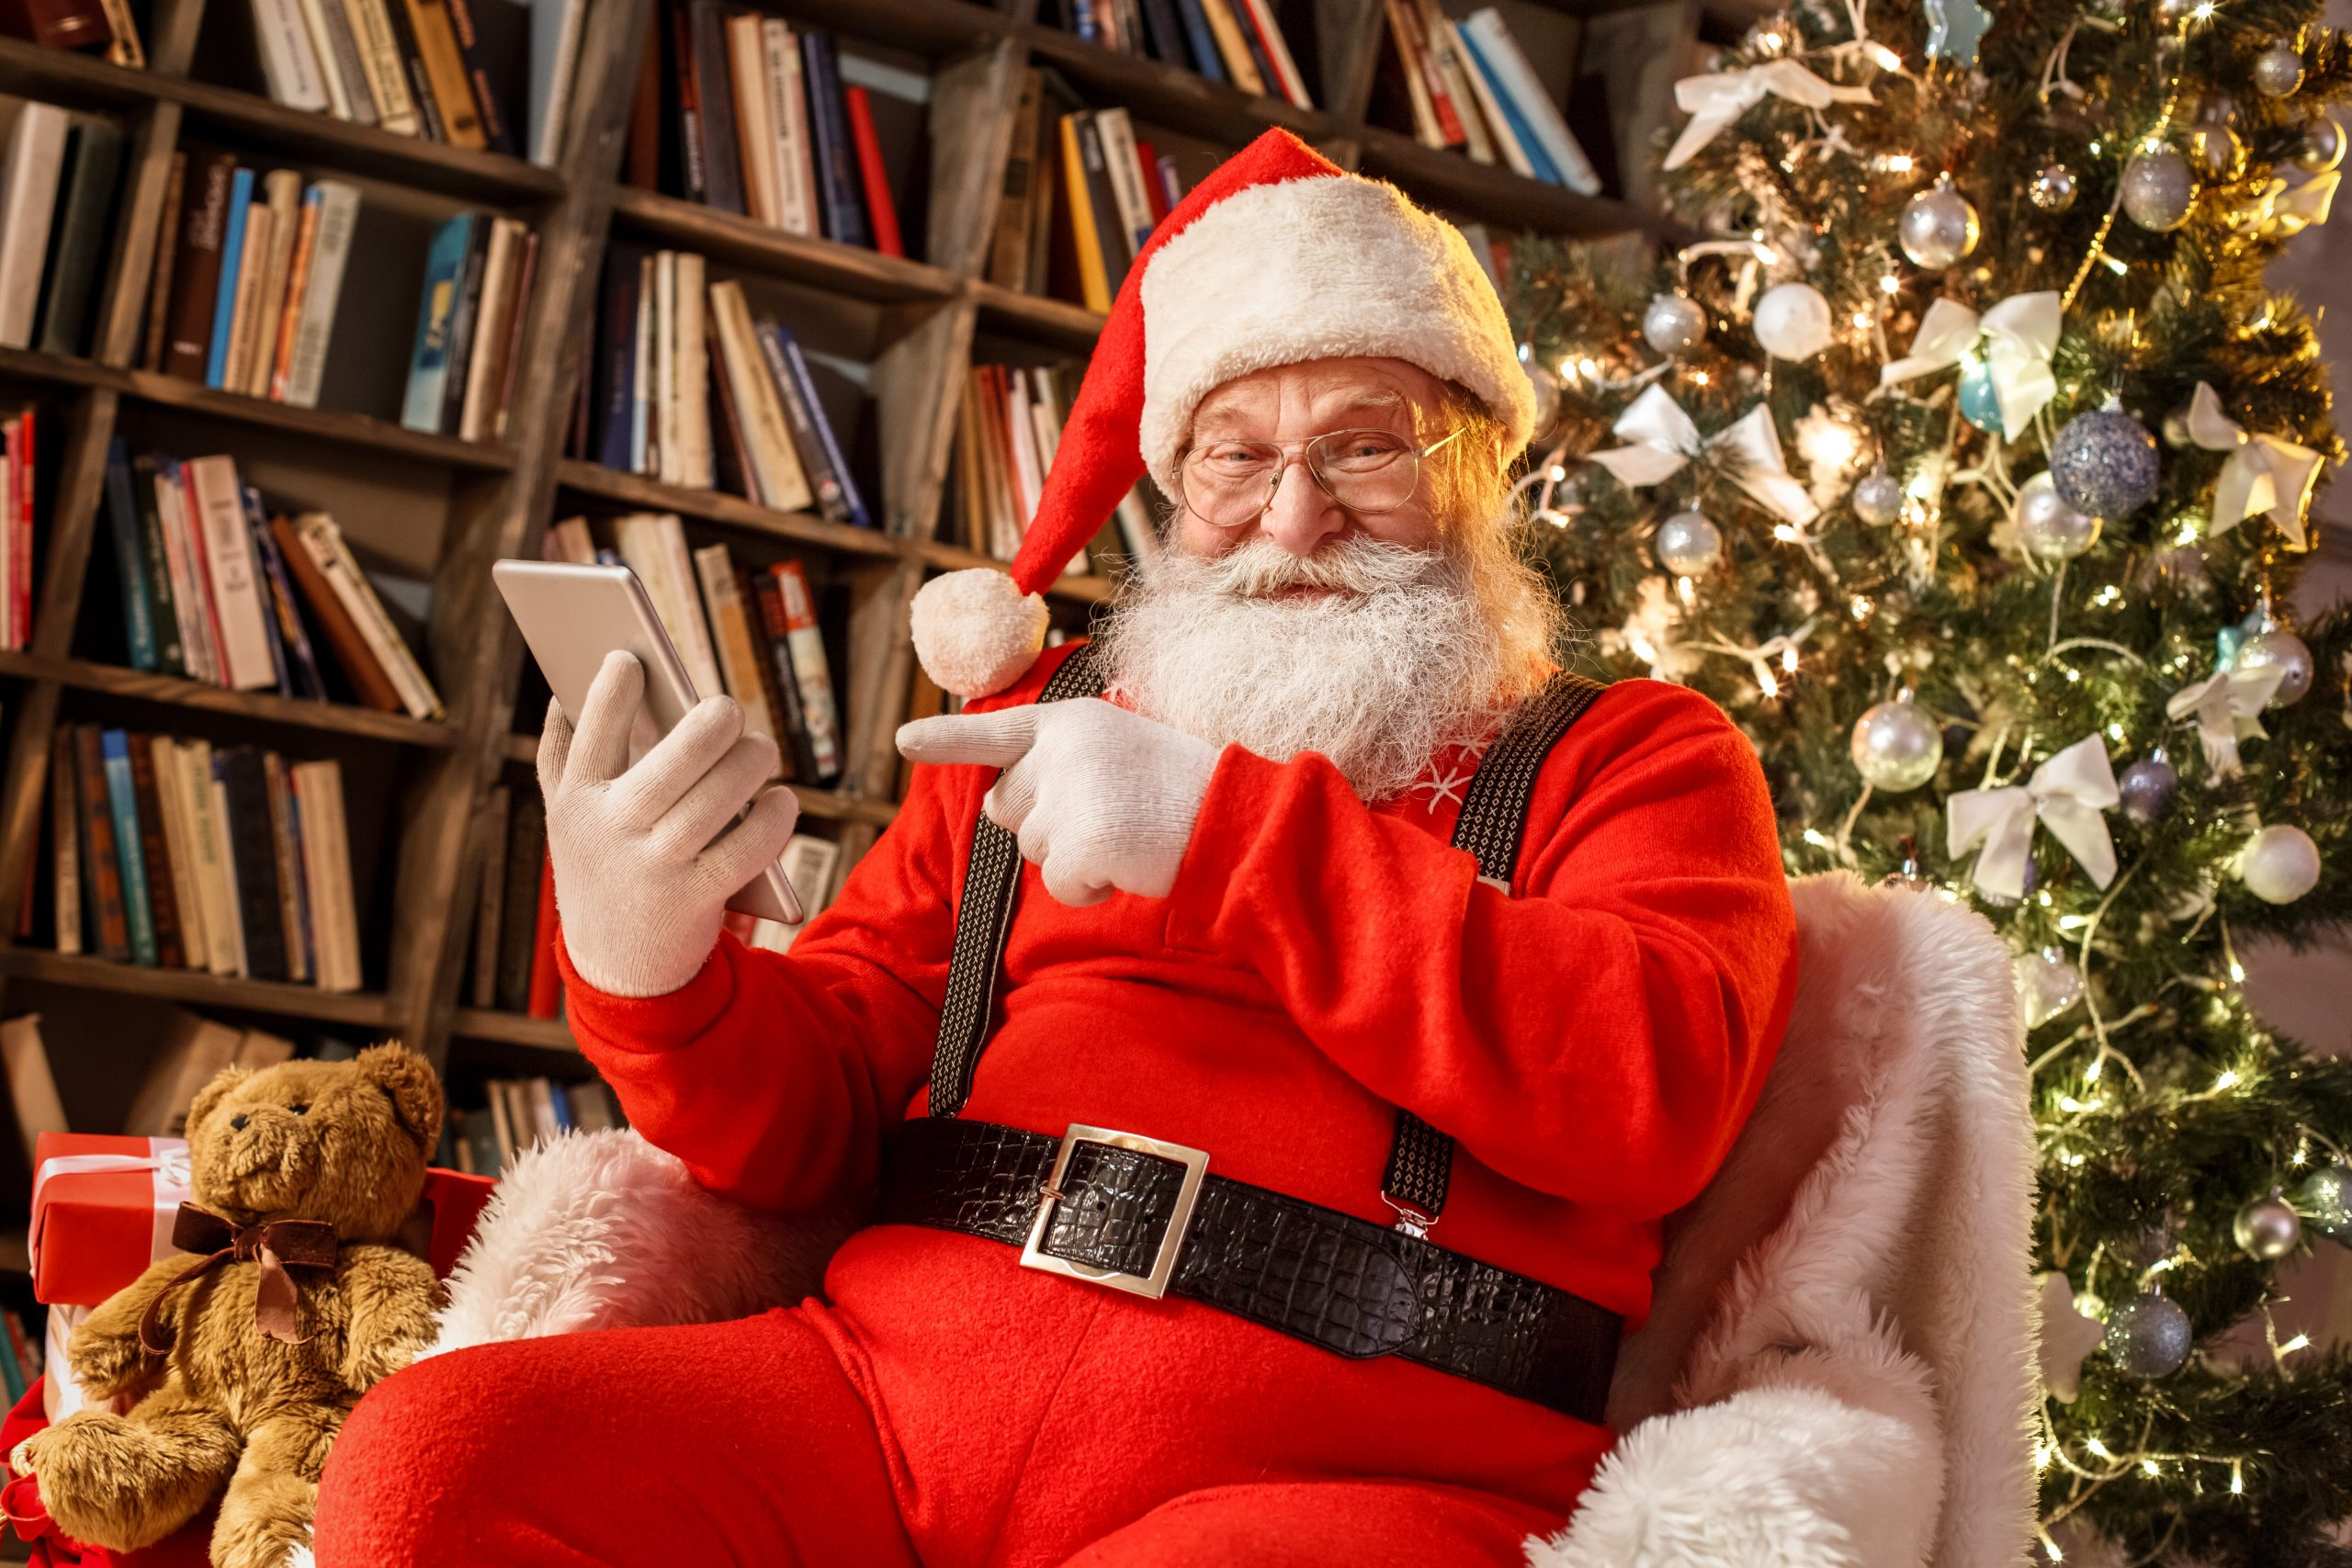 Santa in the library holding a mobile using library app